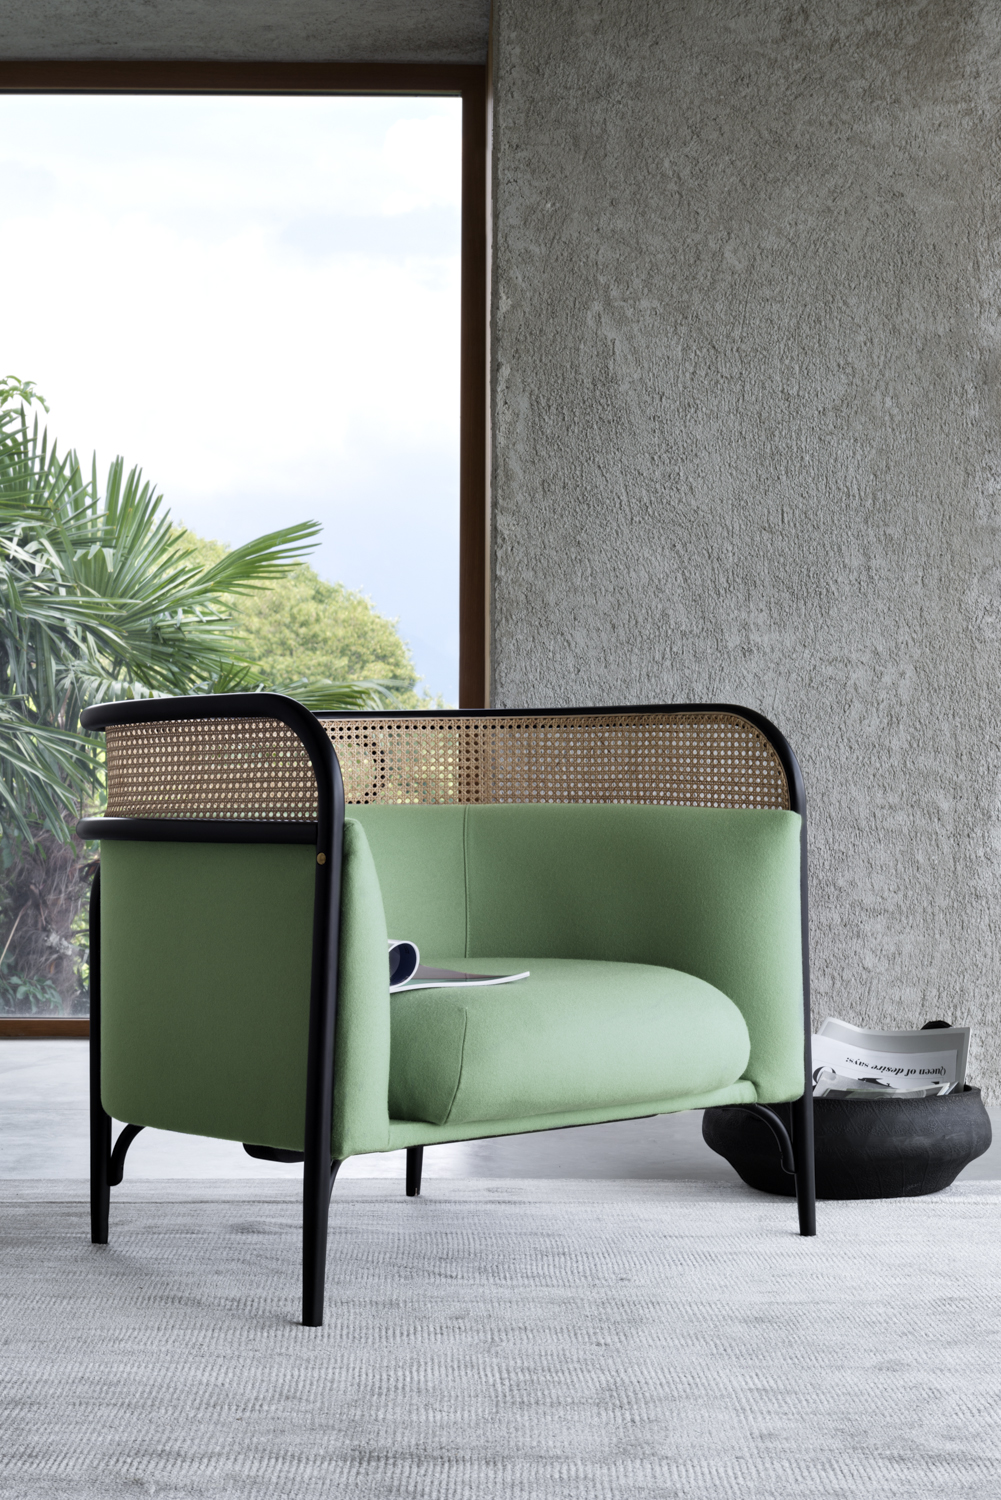 Targa Lounge By GamFratesi for Gebrüder Thonet Vienna | Flodeau.com